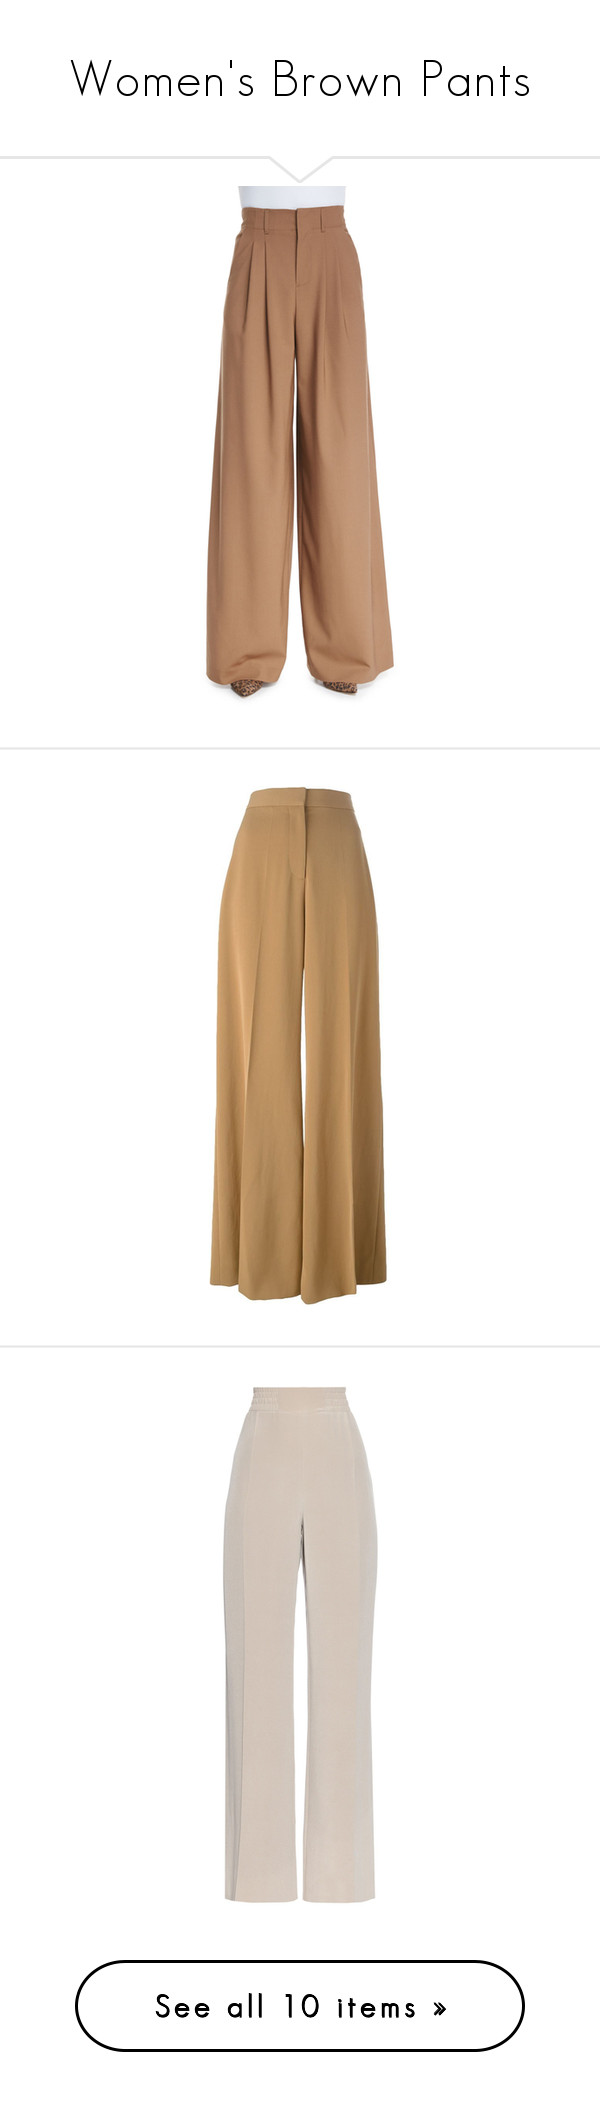 """""""Women's Brown Pants"""" by eternalfeatherfilm on Polyvore featuring pants, camel, high waisted wide leg trousers, high-waist trousers, camel pants, high waisted pants, wide leg pants, bottoms, trousers and stella mccartney"""